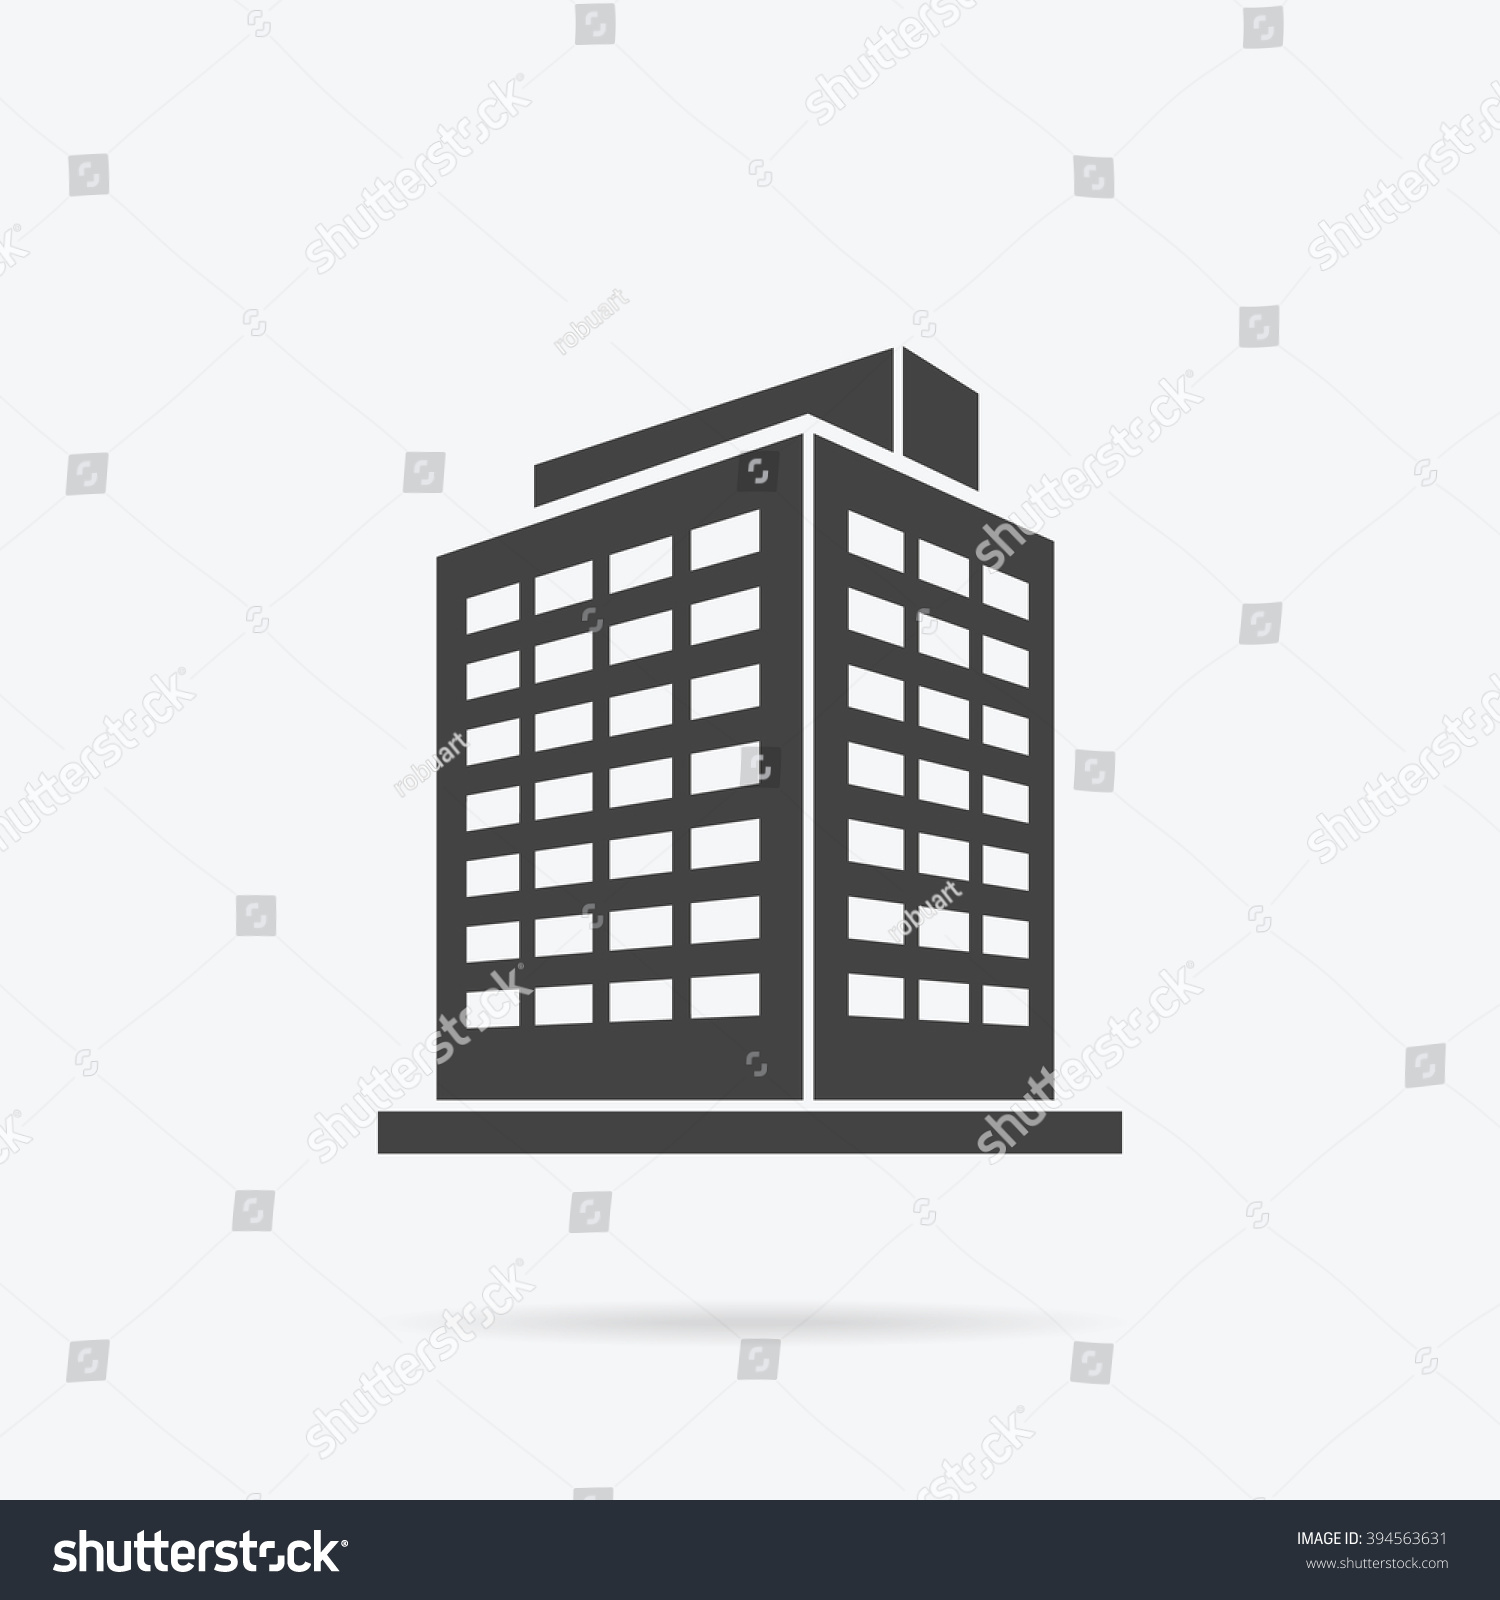 Apartment Building Exterior Design also Floor Plans 3d Printing together with Unique House Floor Plan Ideas besides Office Building Logo additionally High Rise Apartment Exterior Design. on office building 3d floor plans